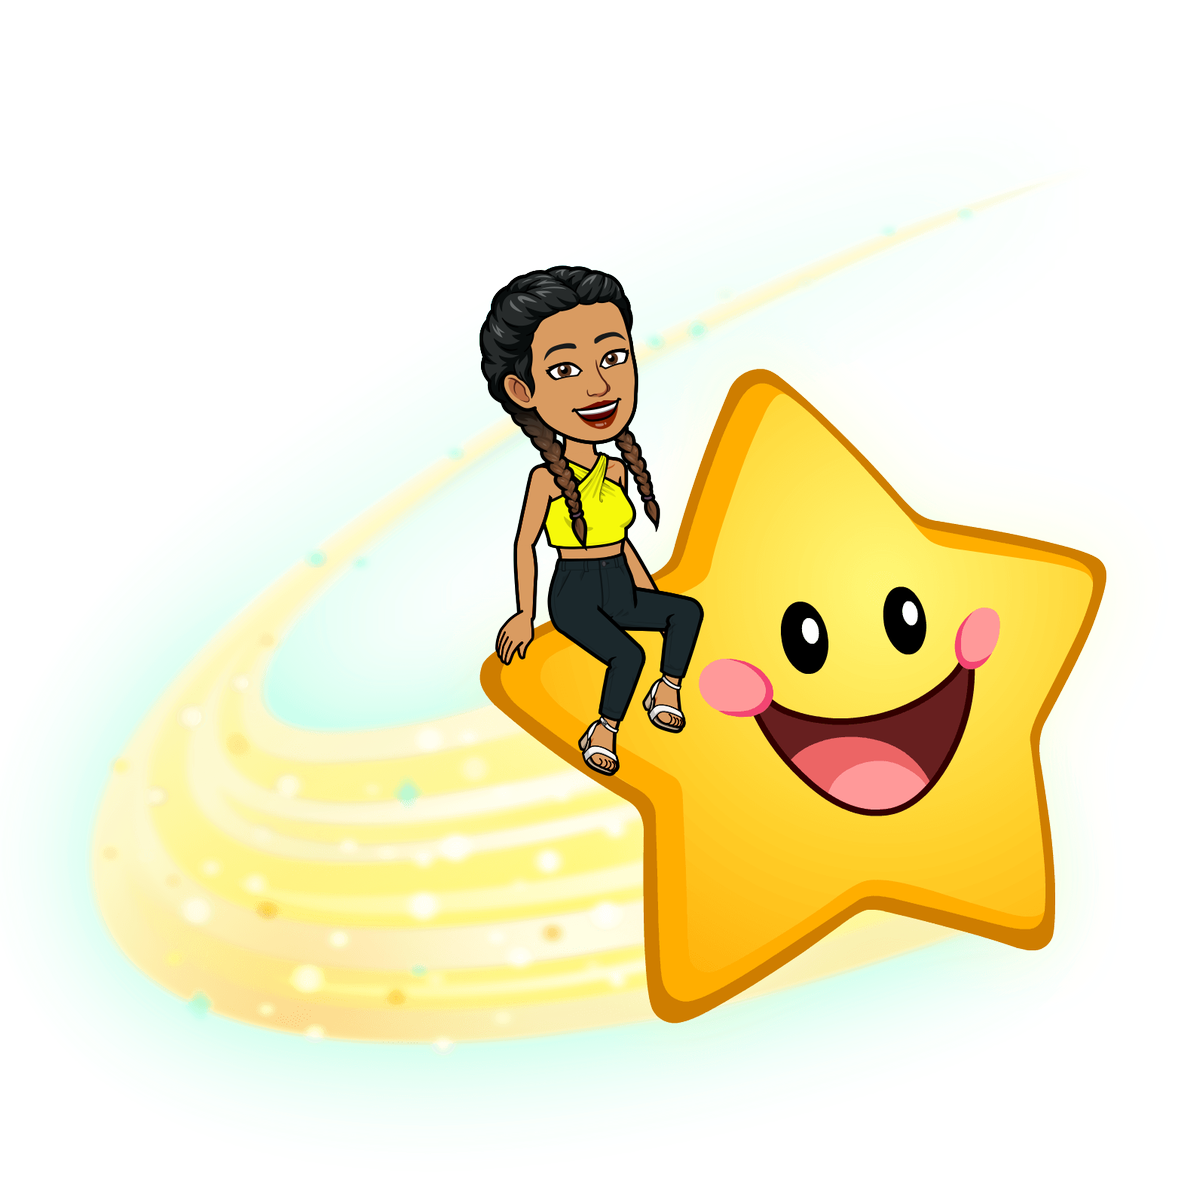 Happy Newmoji Friday 🥳 Ready for some weekend plans starring you and a cute Bitmoji? https://t.co/2B3SQZw1Es